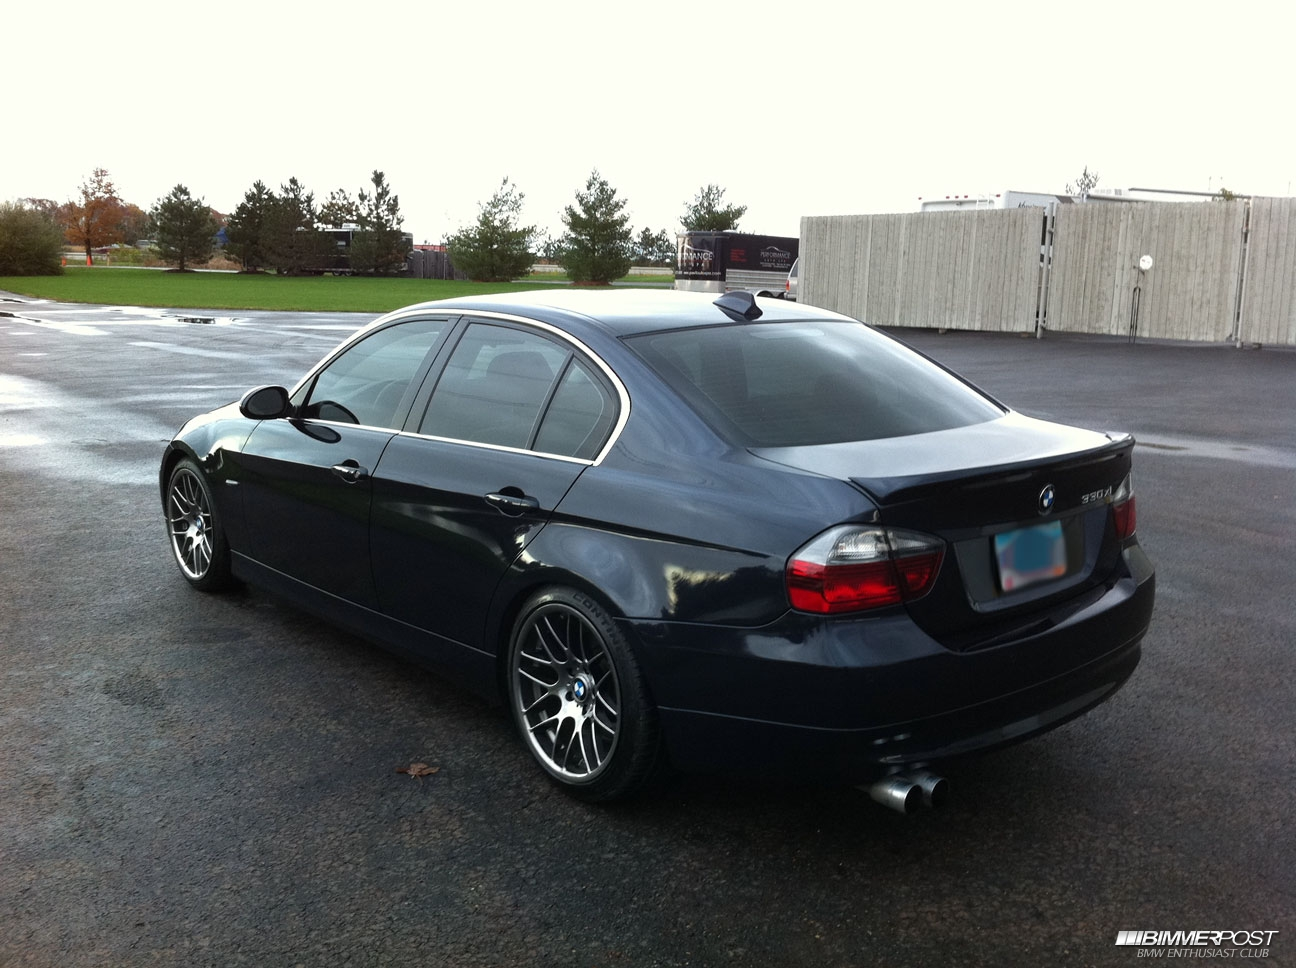 TMc135\'s 2006 BMW 330xi - BIMMERPOST Garage